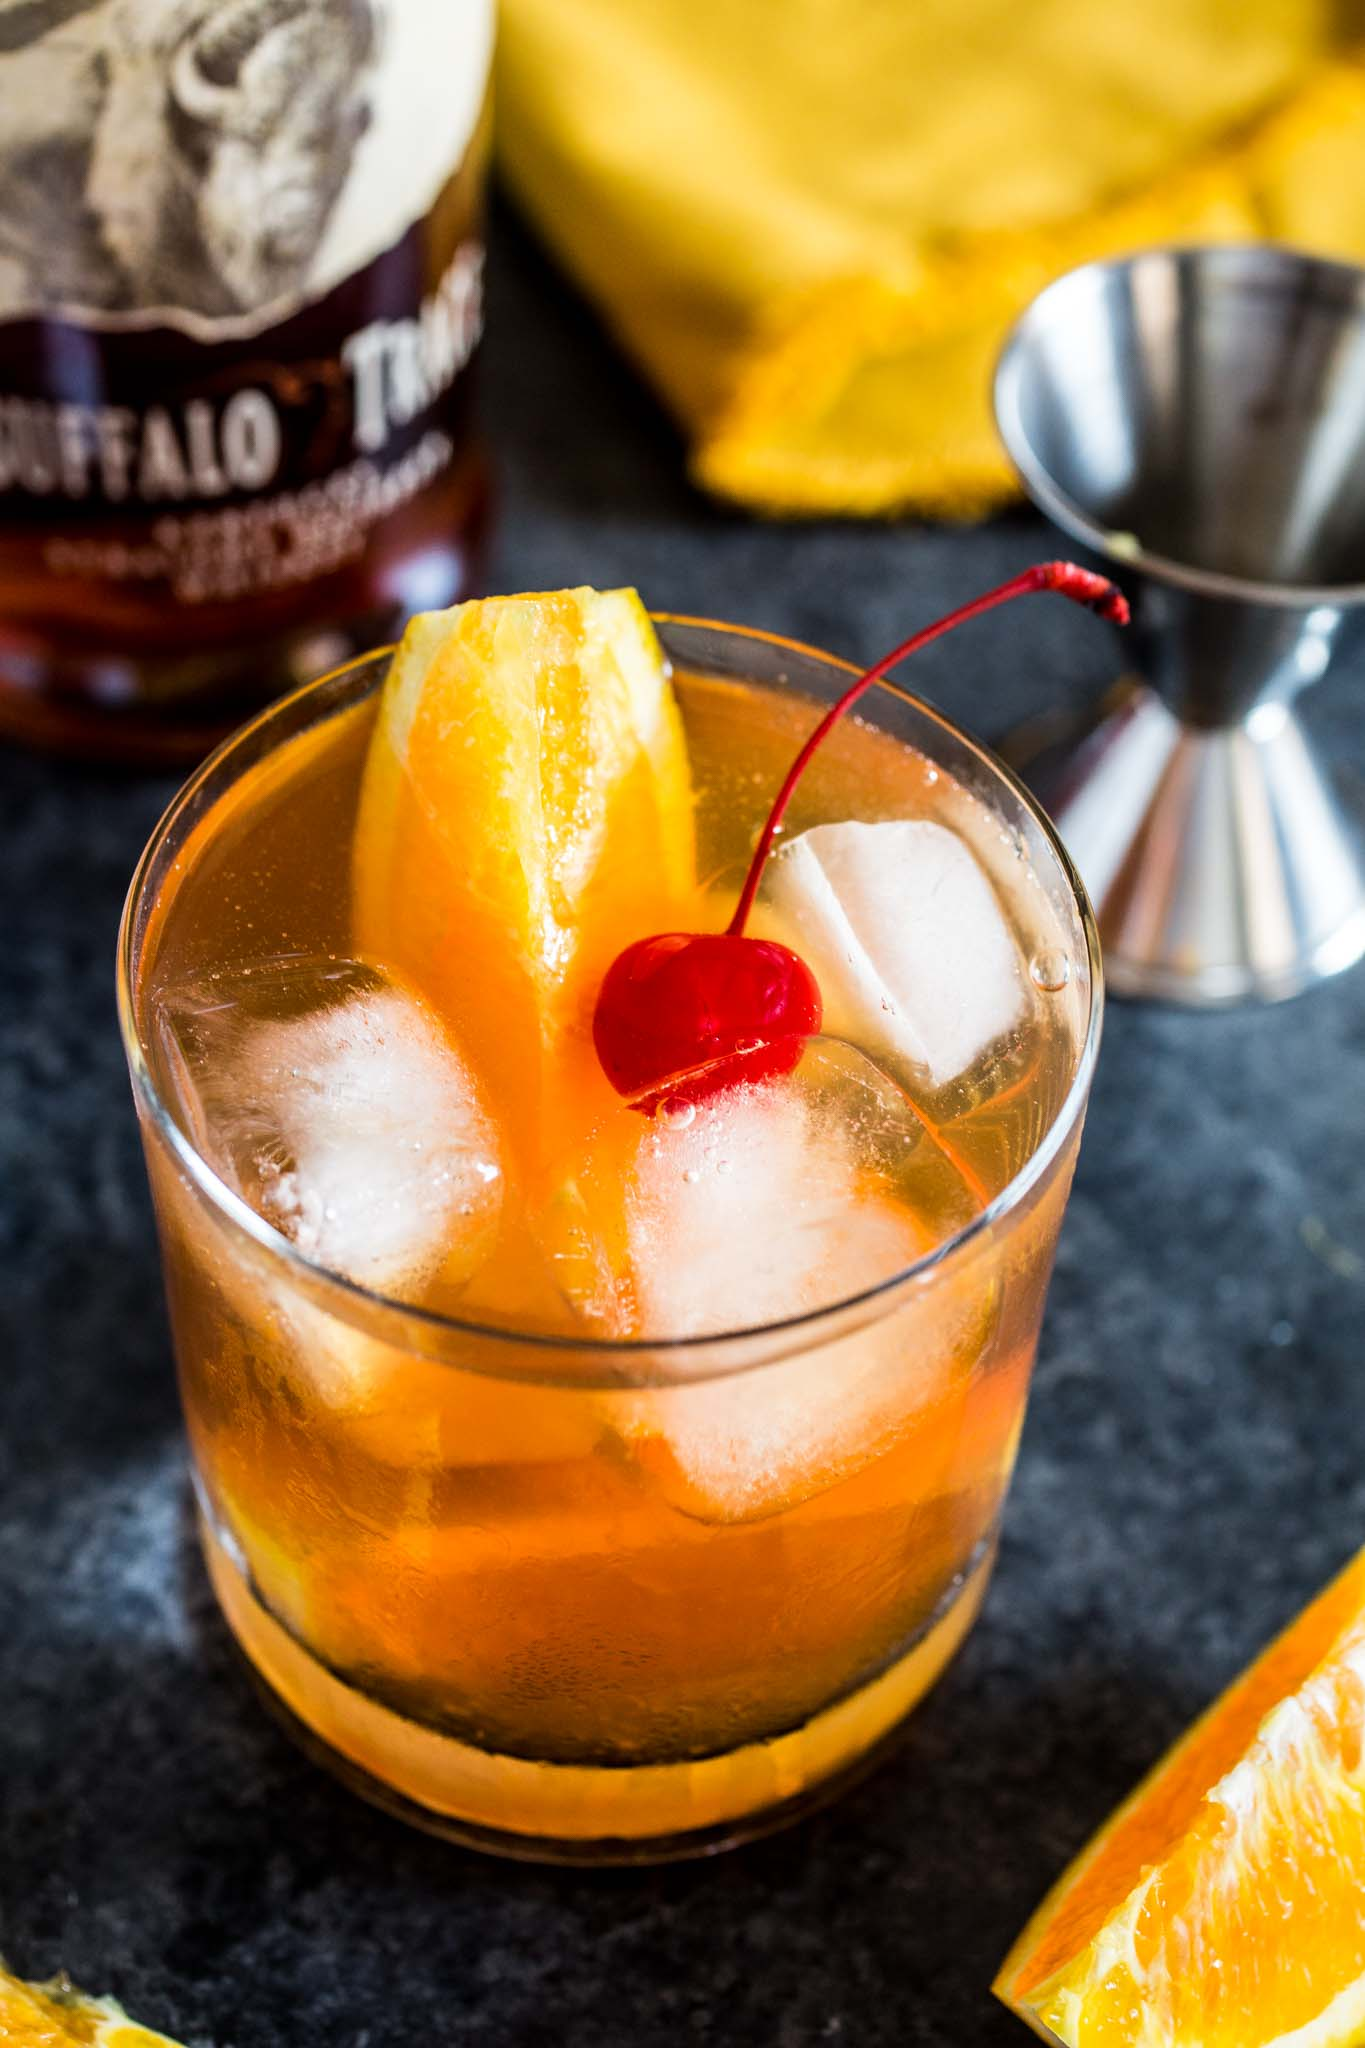 Bourbon Old Fashioned   Olivia s Cuisine Bourbon Old Fashioned   www oliviascuisine com   A classic bourbon cocktail  made with